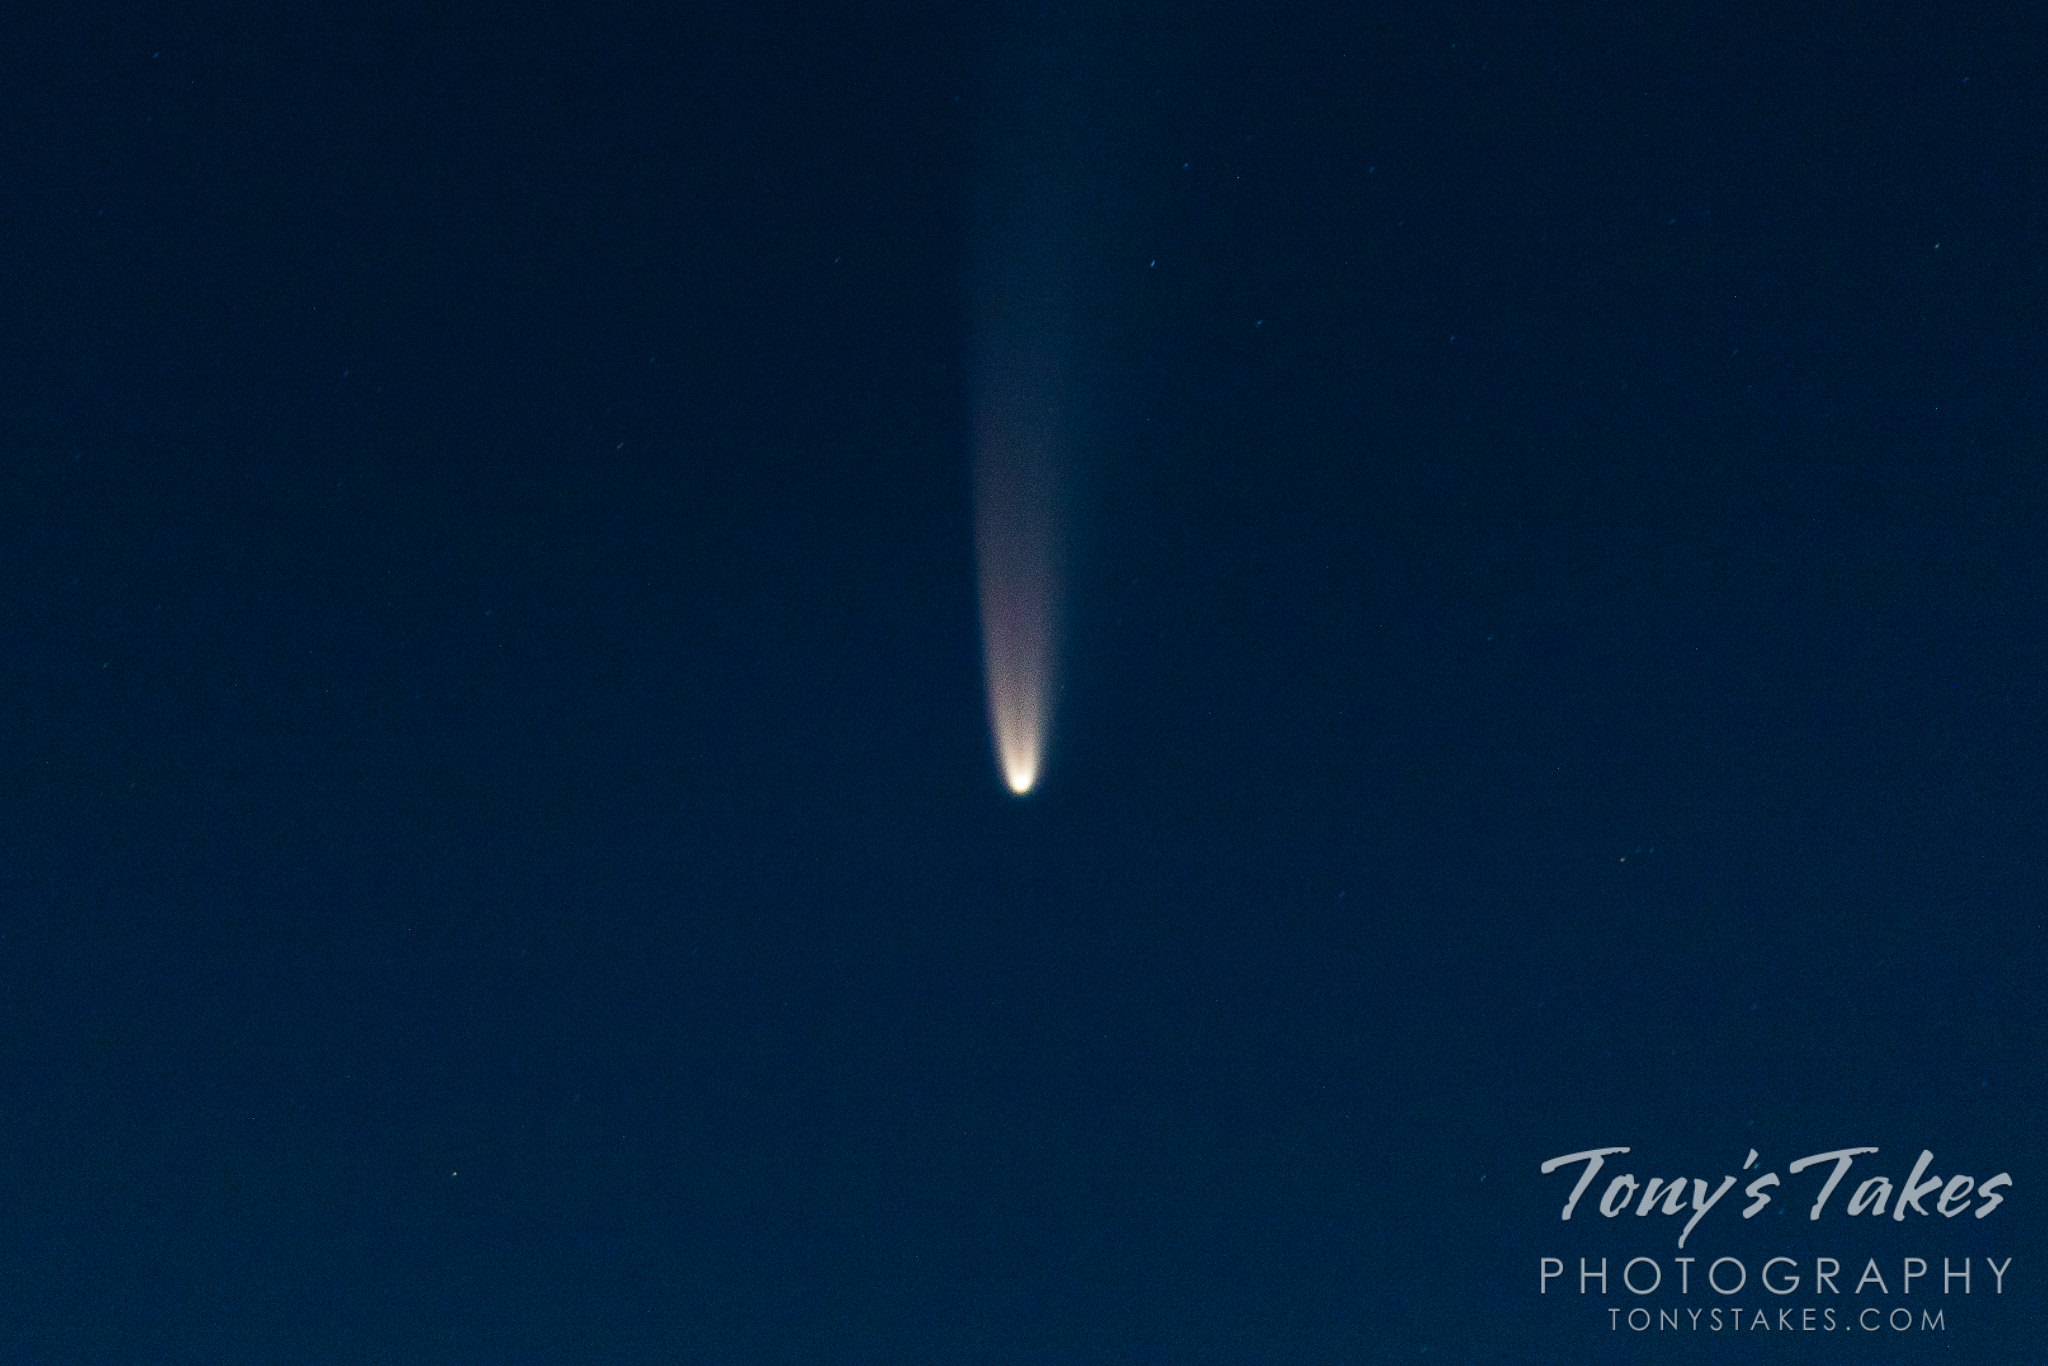 Comet NEOWISE makes an appearance in the early morning sky